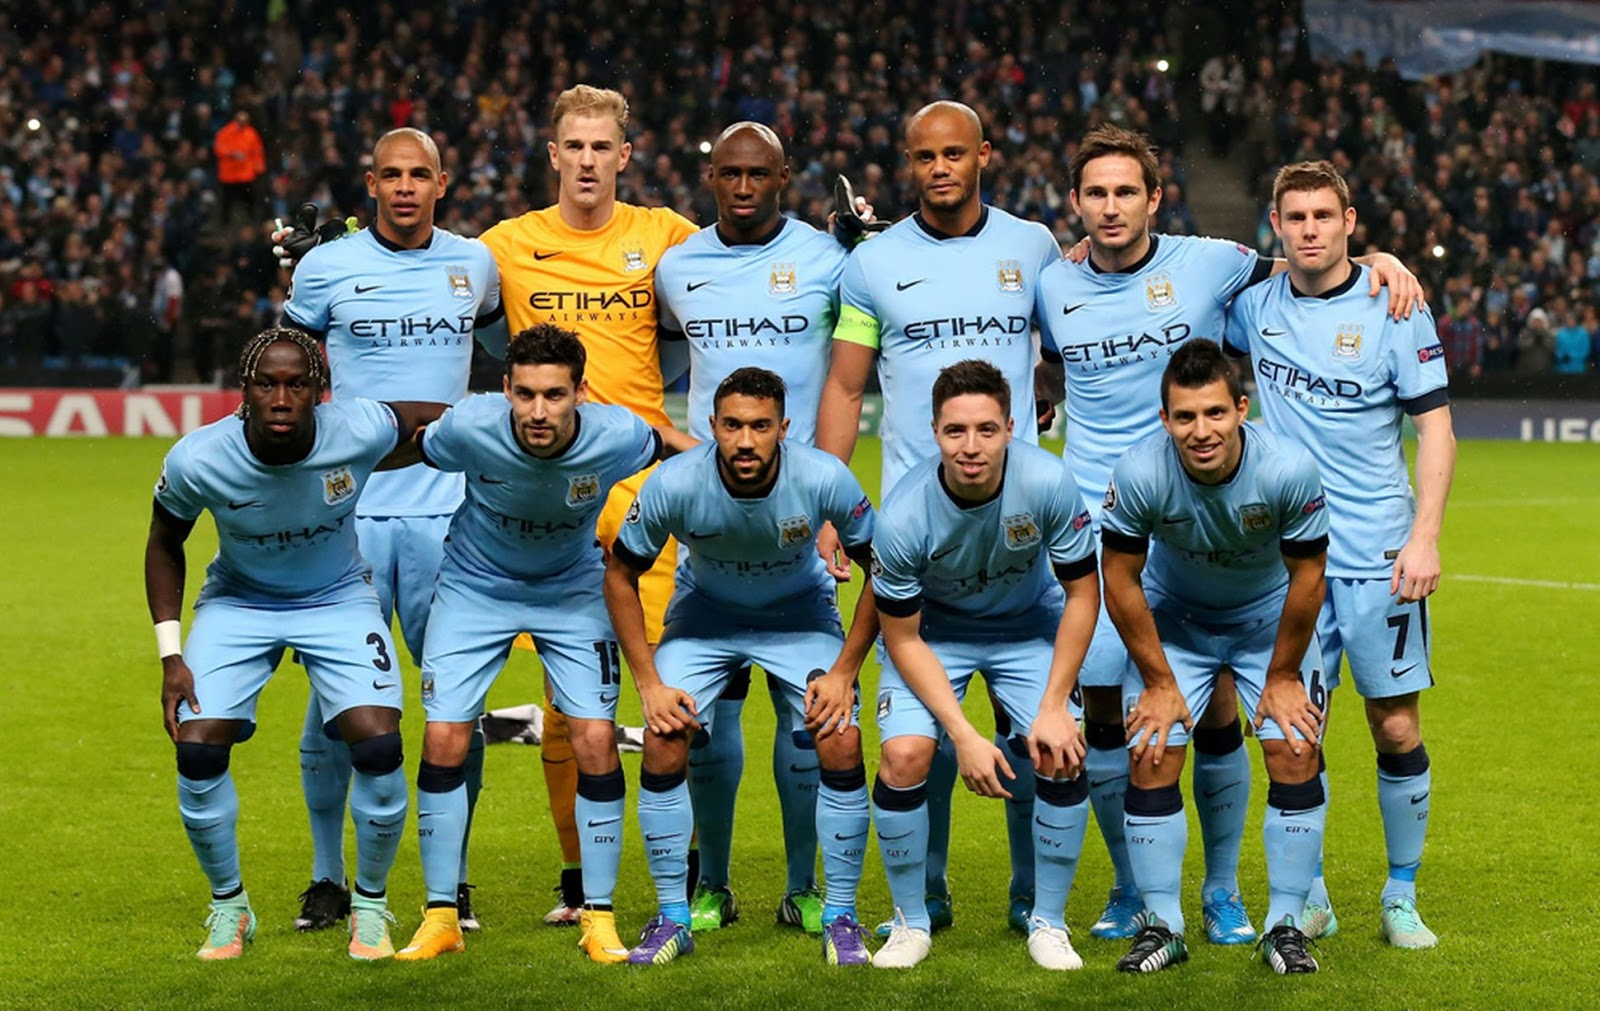 Manchester City Team Football Wallpaper